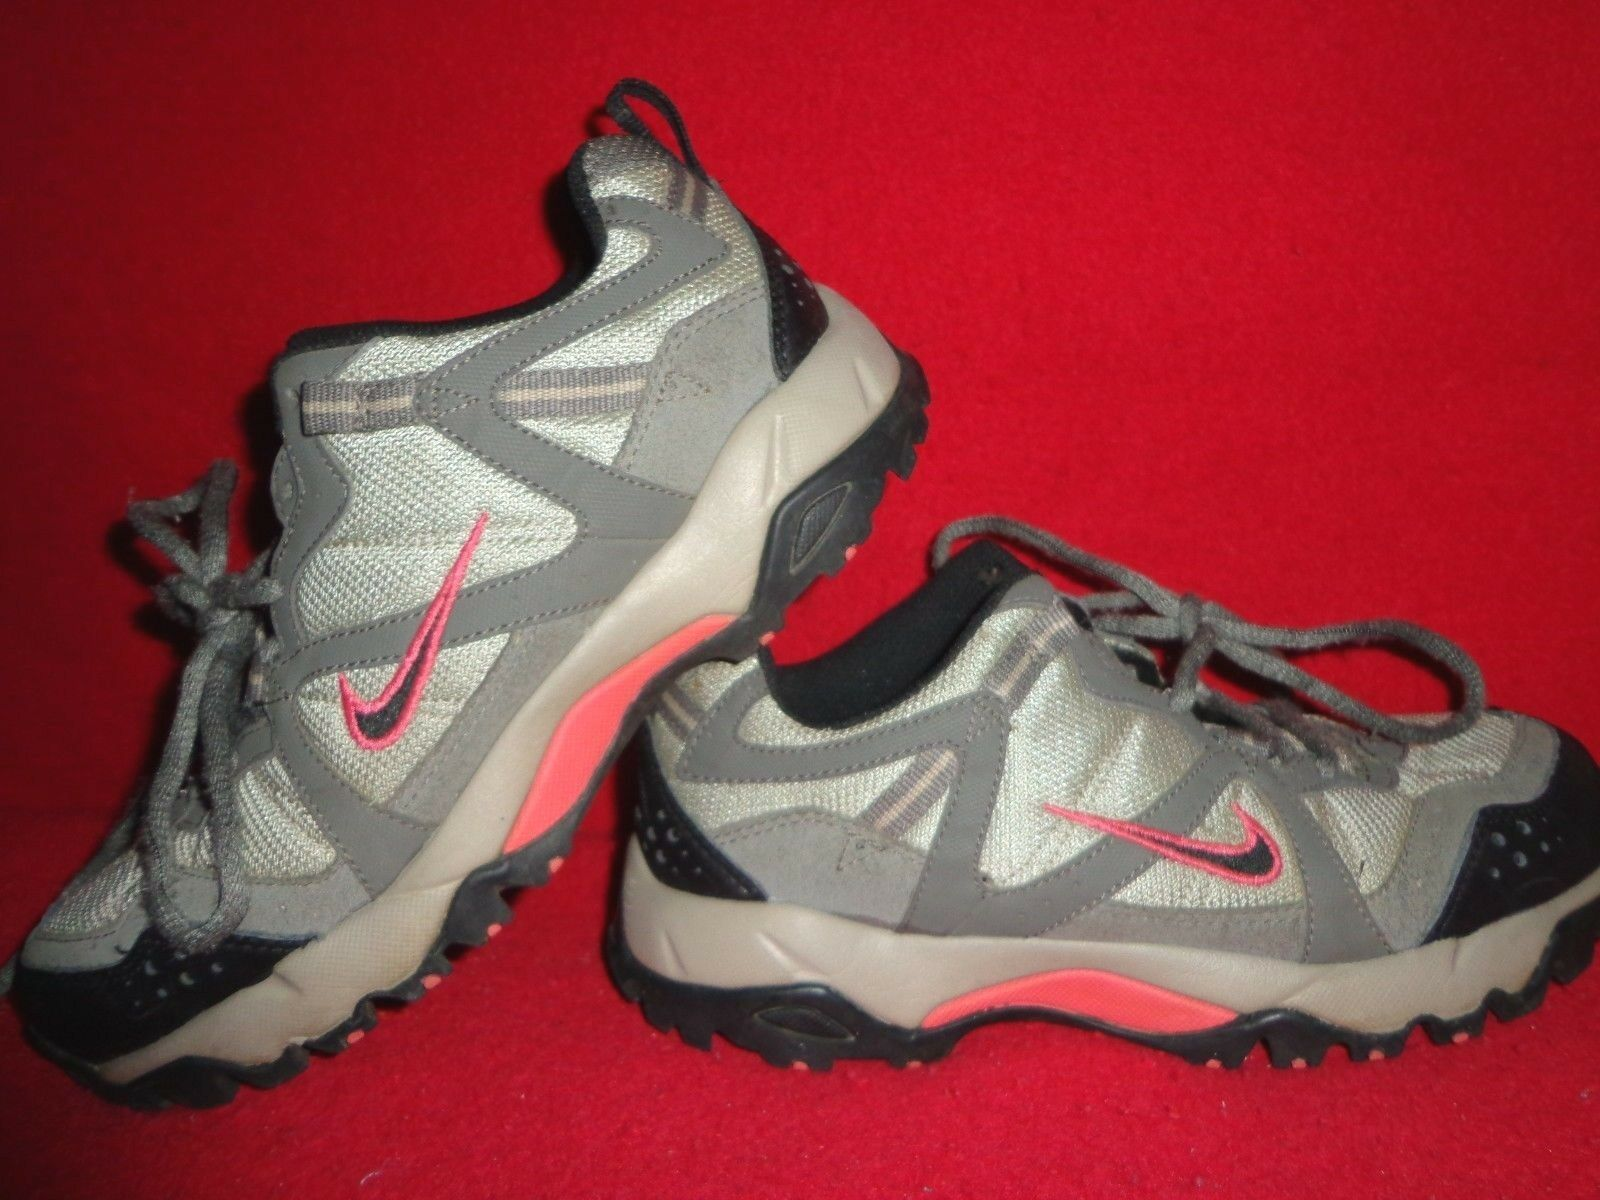 Nike ACG All-trac Trail Athletic Womens Shoes Multi-color Size 8 for ... 5263128b4b